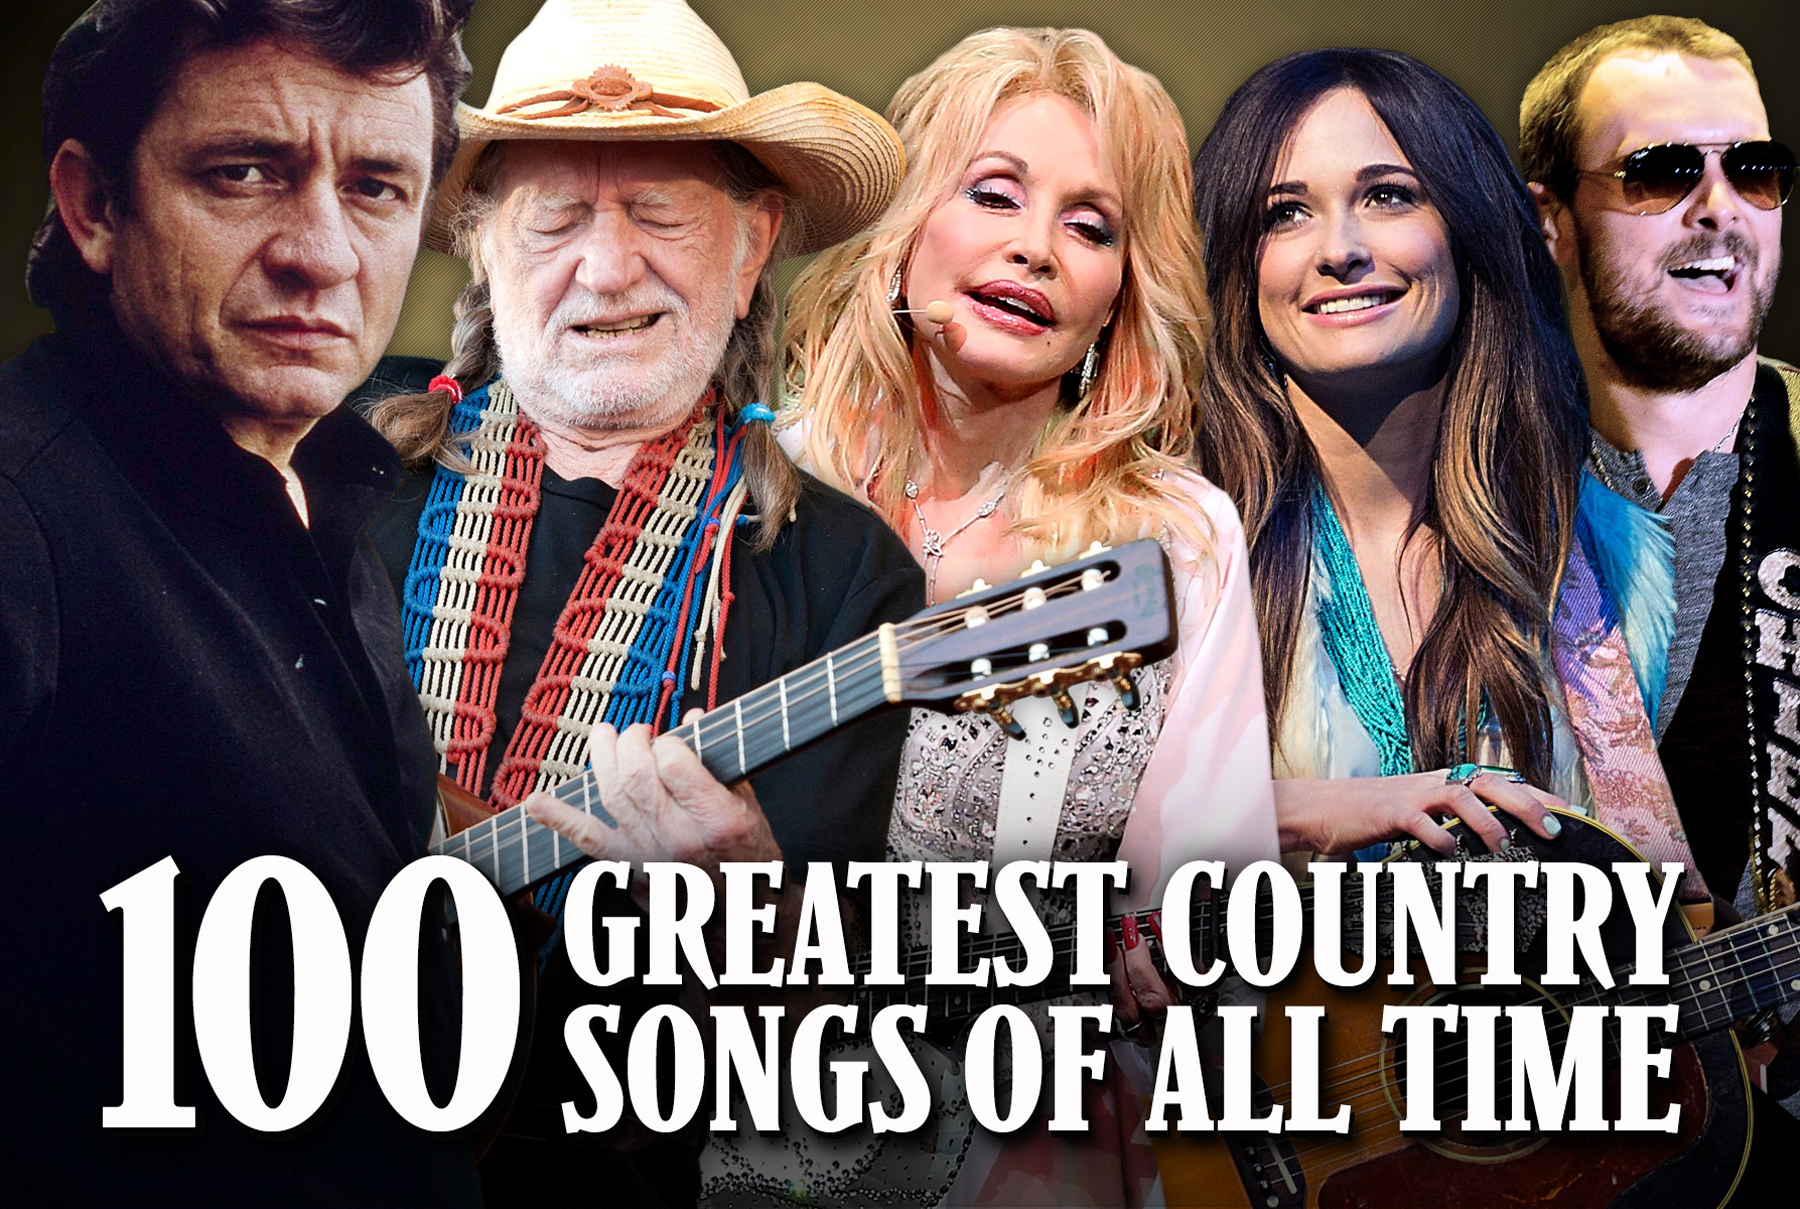 100 most popular country songs of all time